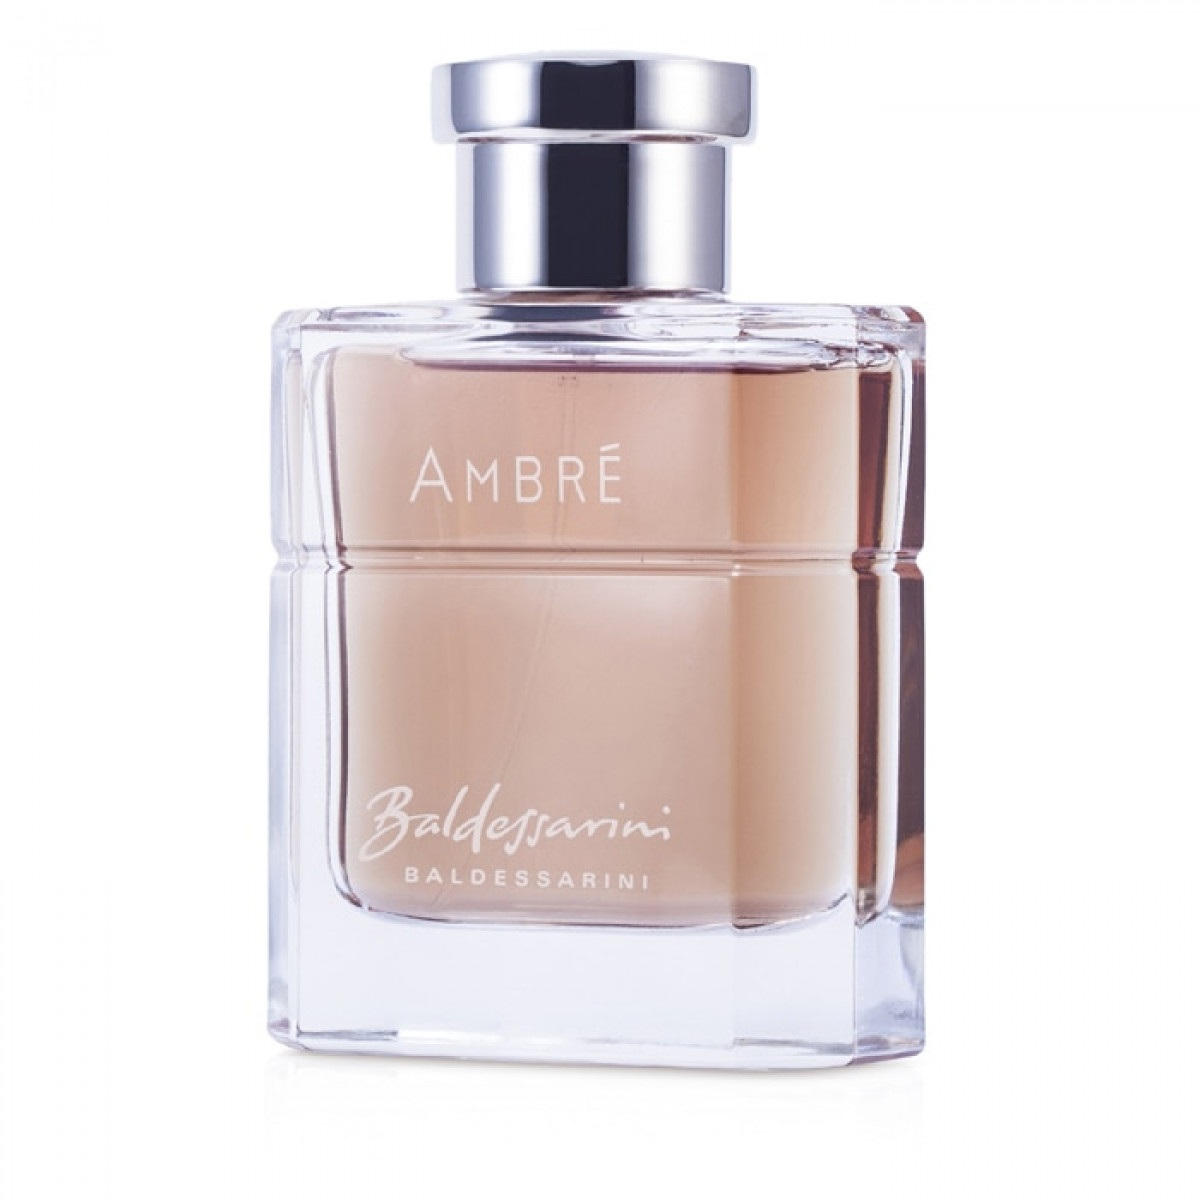 Baldessarini Ambre Men's Cologne